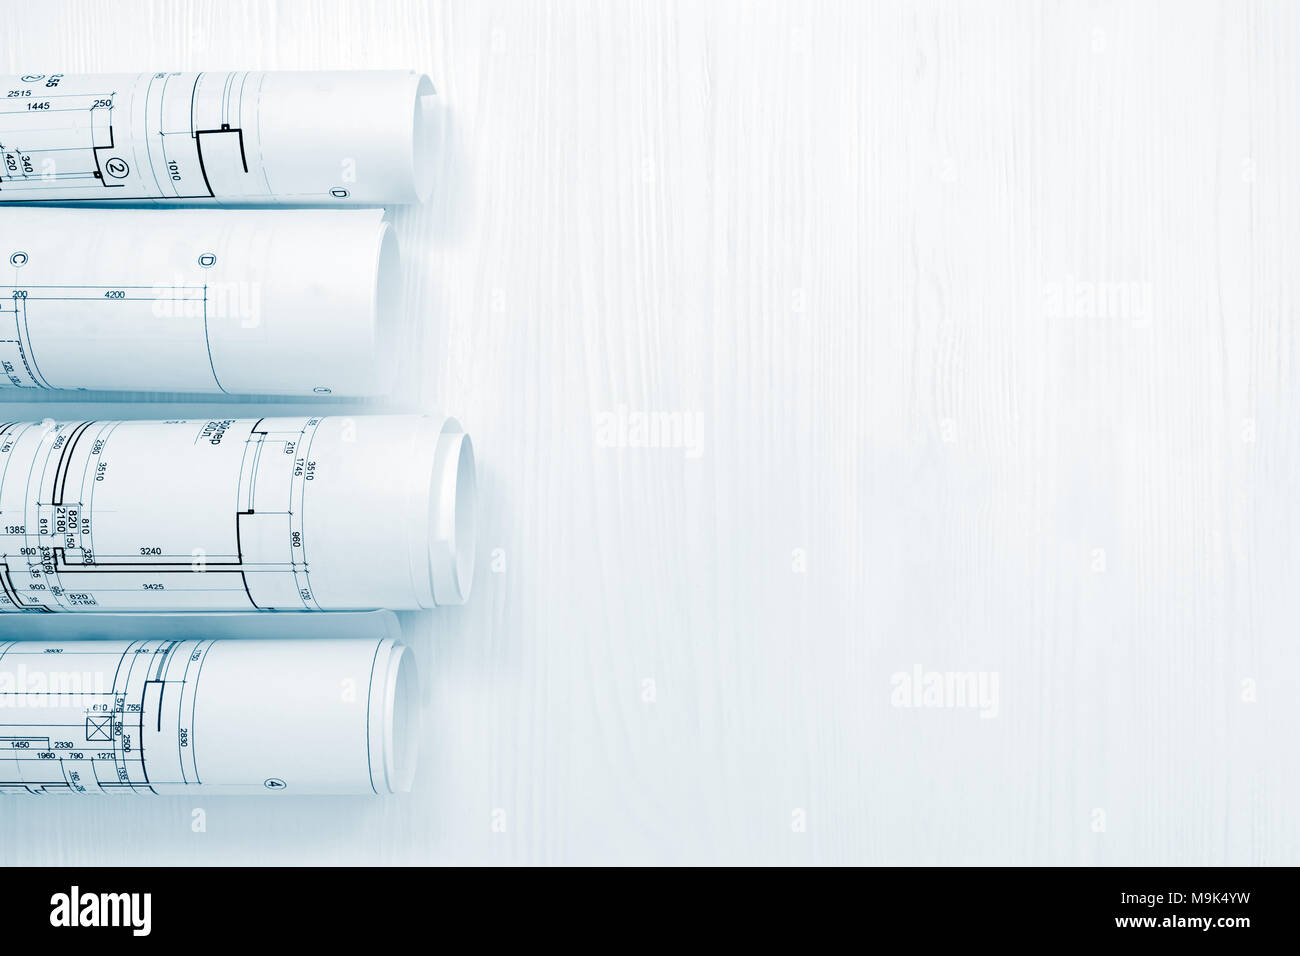 Architectural background with blueprint rolls and technical drawings architectural background with blueprint rolls and technical drawings flat view malvernweather Gallery